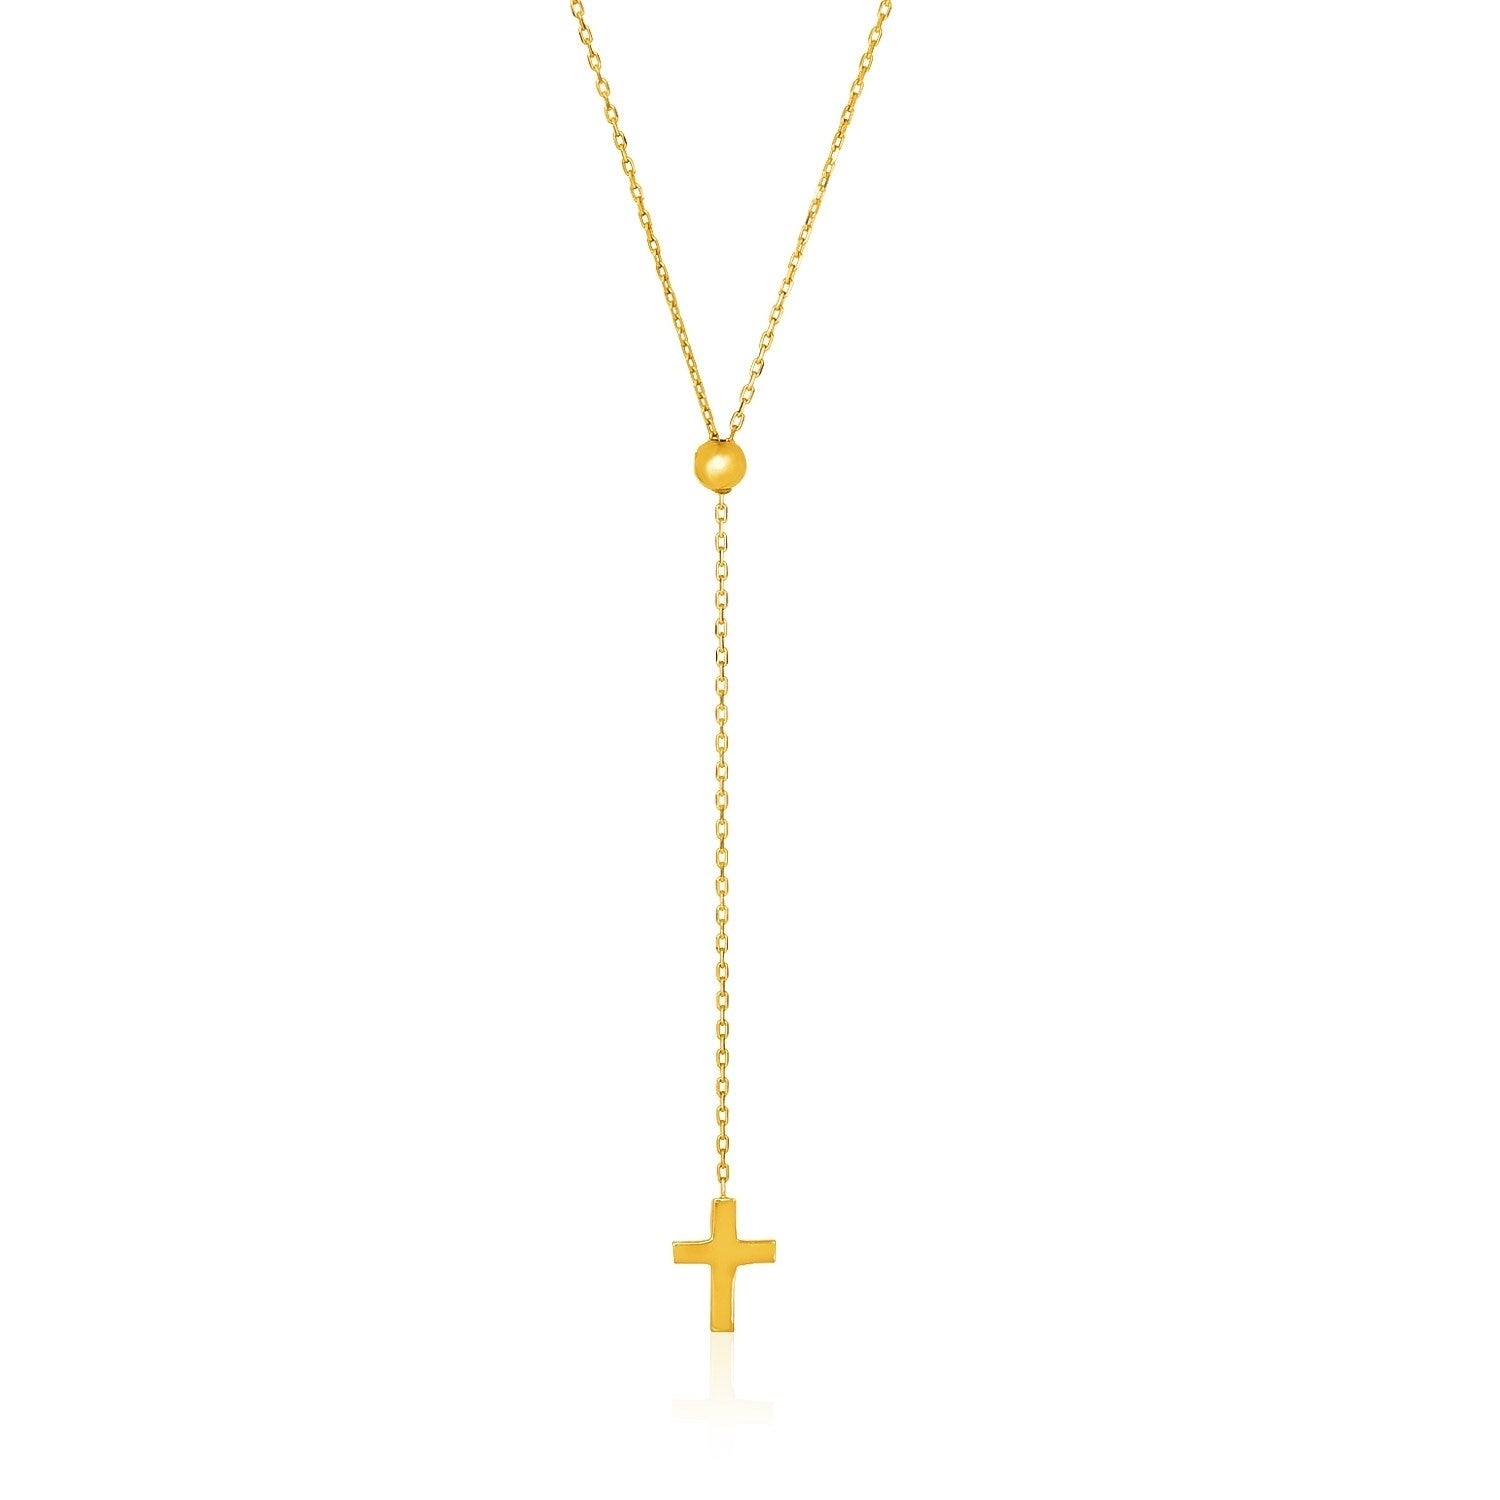 14K Yellow Gold Adjustable Cable Chain Necklace With Cross With Most Recent Long Link Cable Chain Necklaces (View 15 of 25)